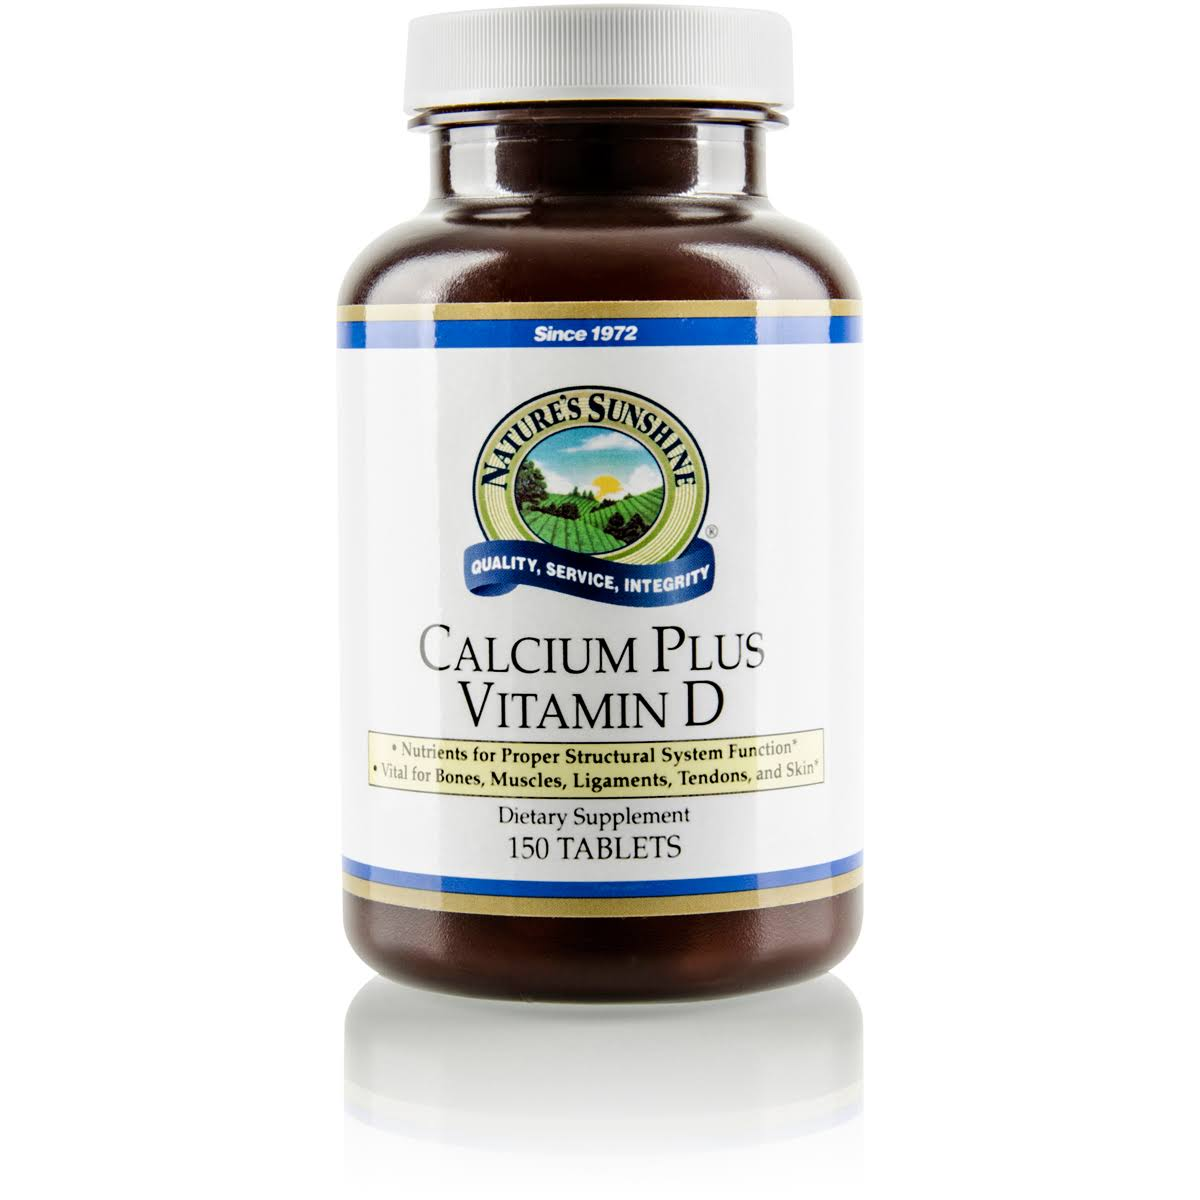 Nature's Sunshine Calcium Plus Vitamin D Supplement - 150 Tablets